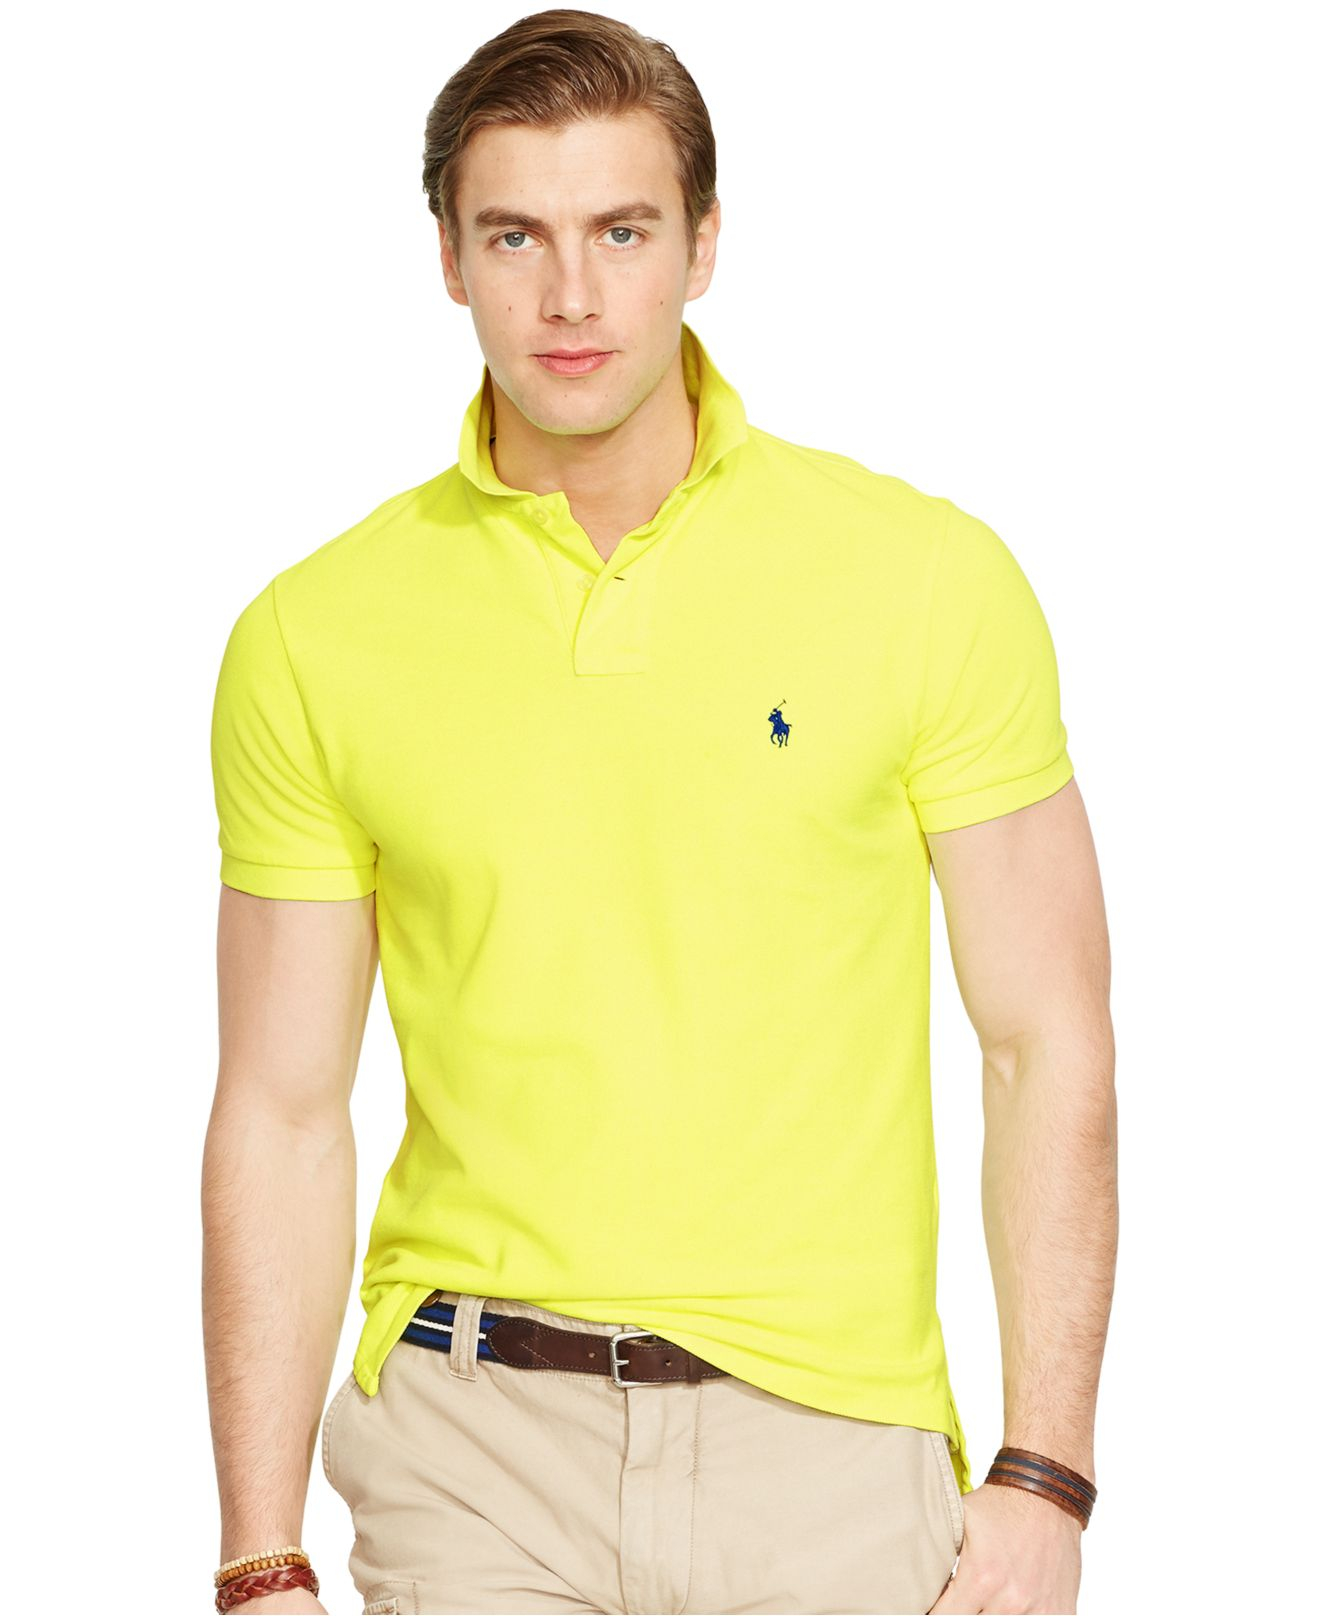 Lyst Polo Ralph Lauren Custom Fit Neon Mesh Polo Shirt